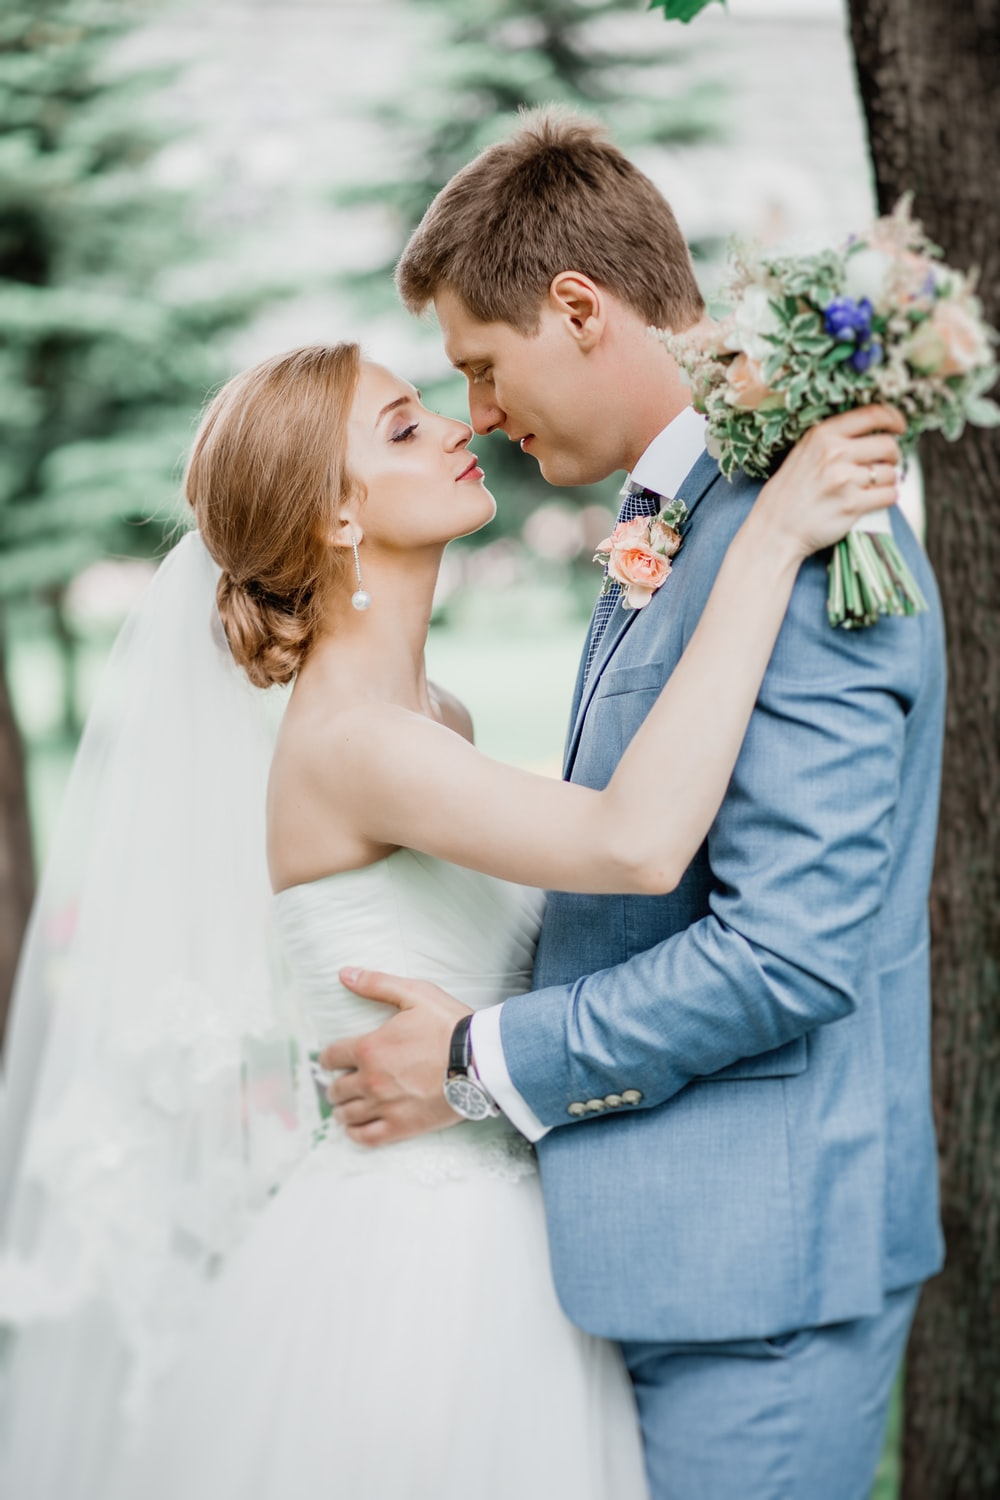 man in gray suit kissing woman in white dress